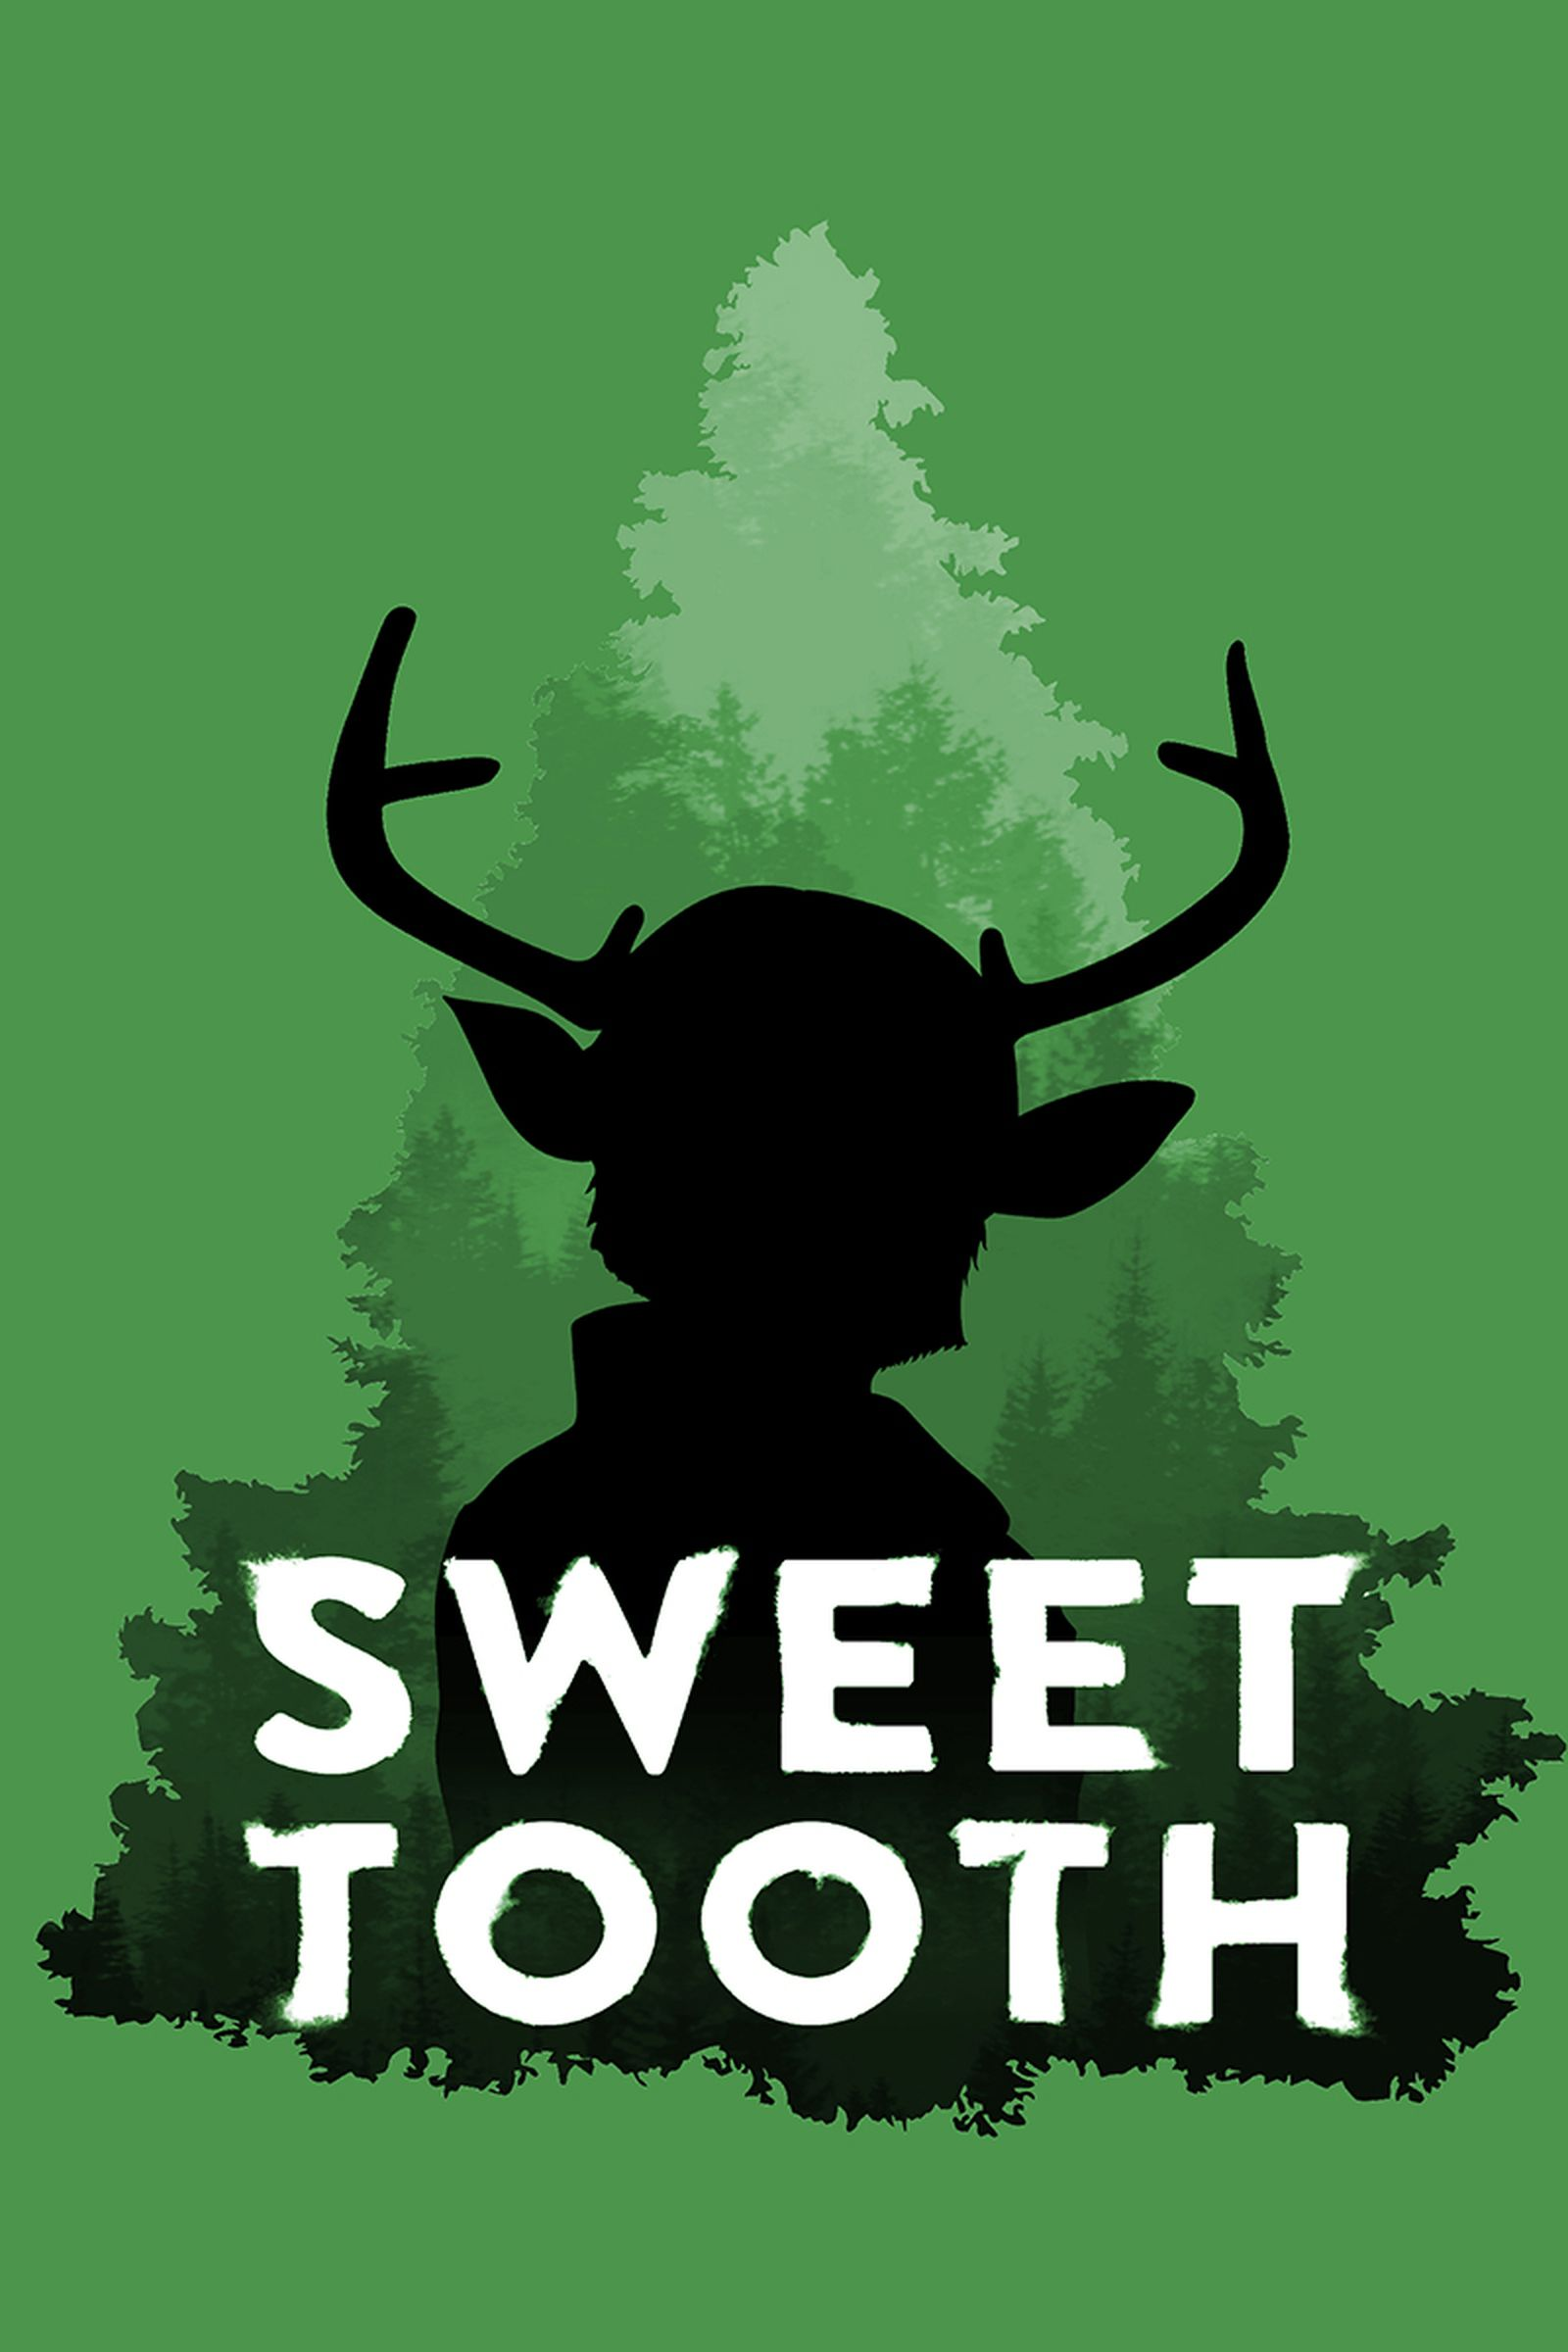 Netflix 'sweet tooth' poster